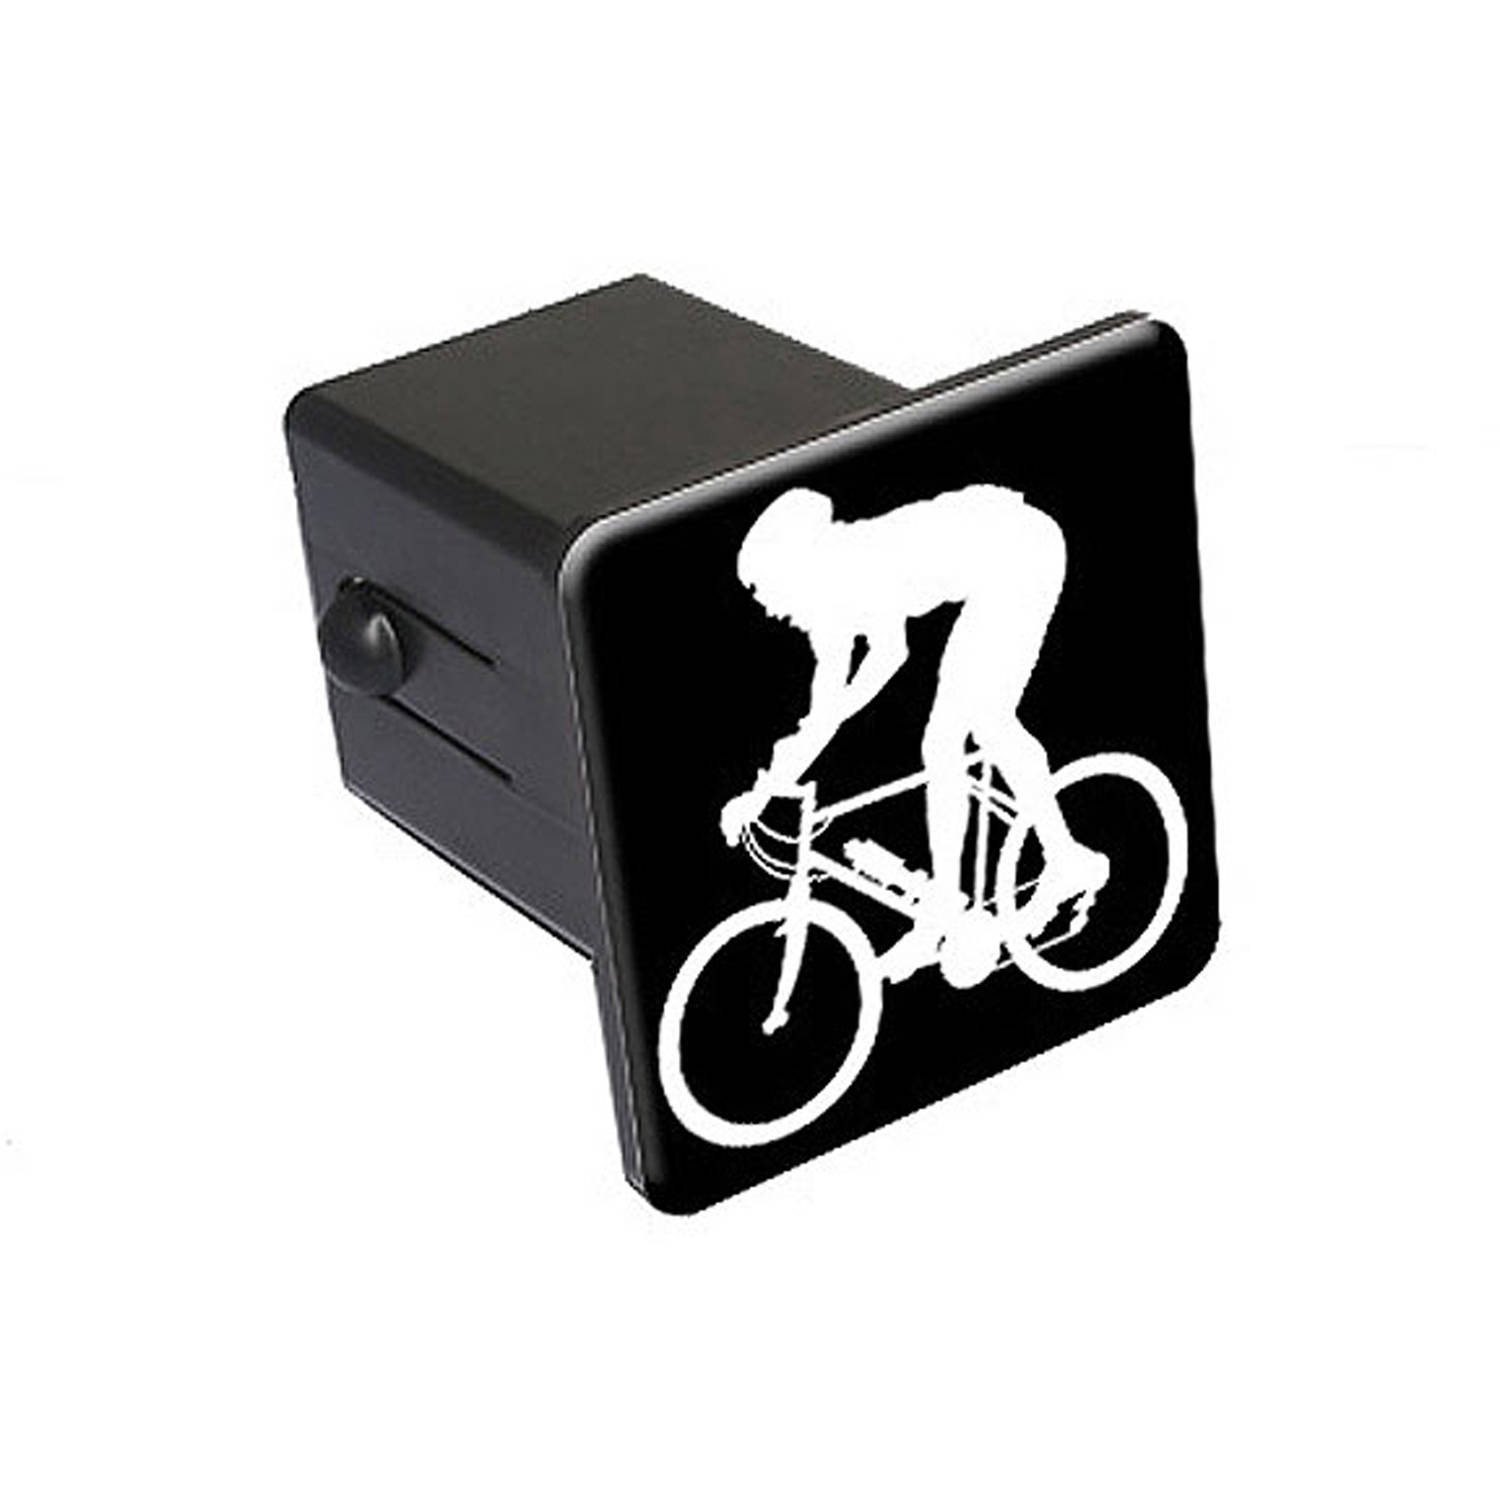 Christmas Bicycle Bike and Cat in Basket Tow Trailer Hitch Cover Plug Insert